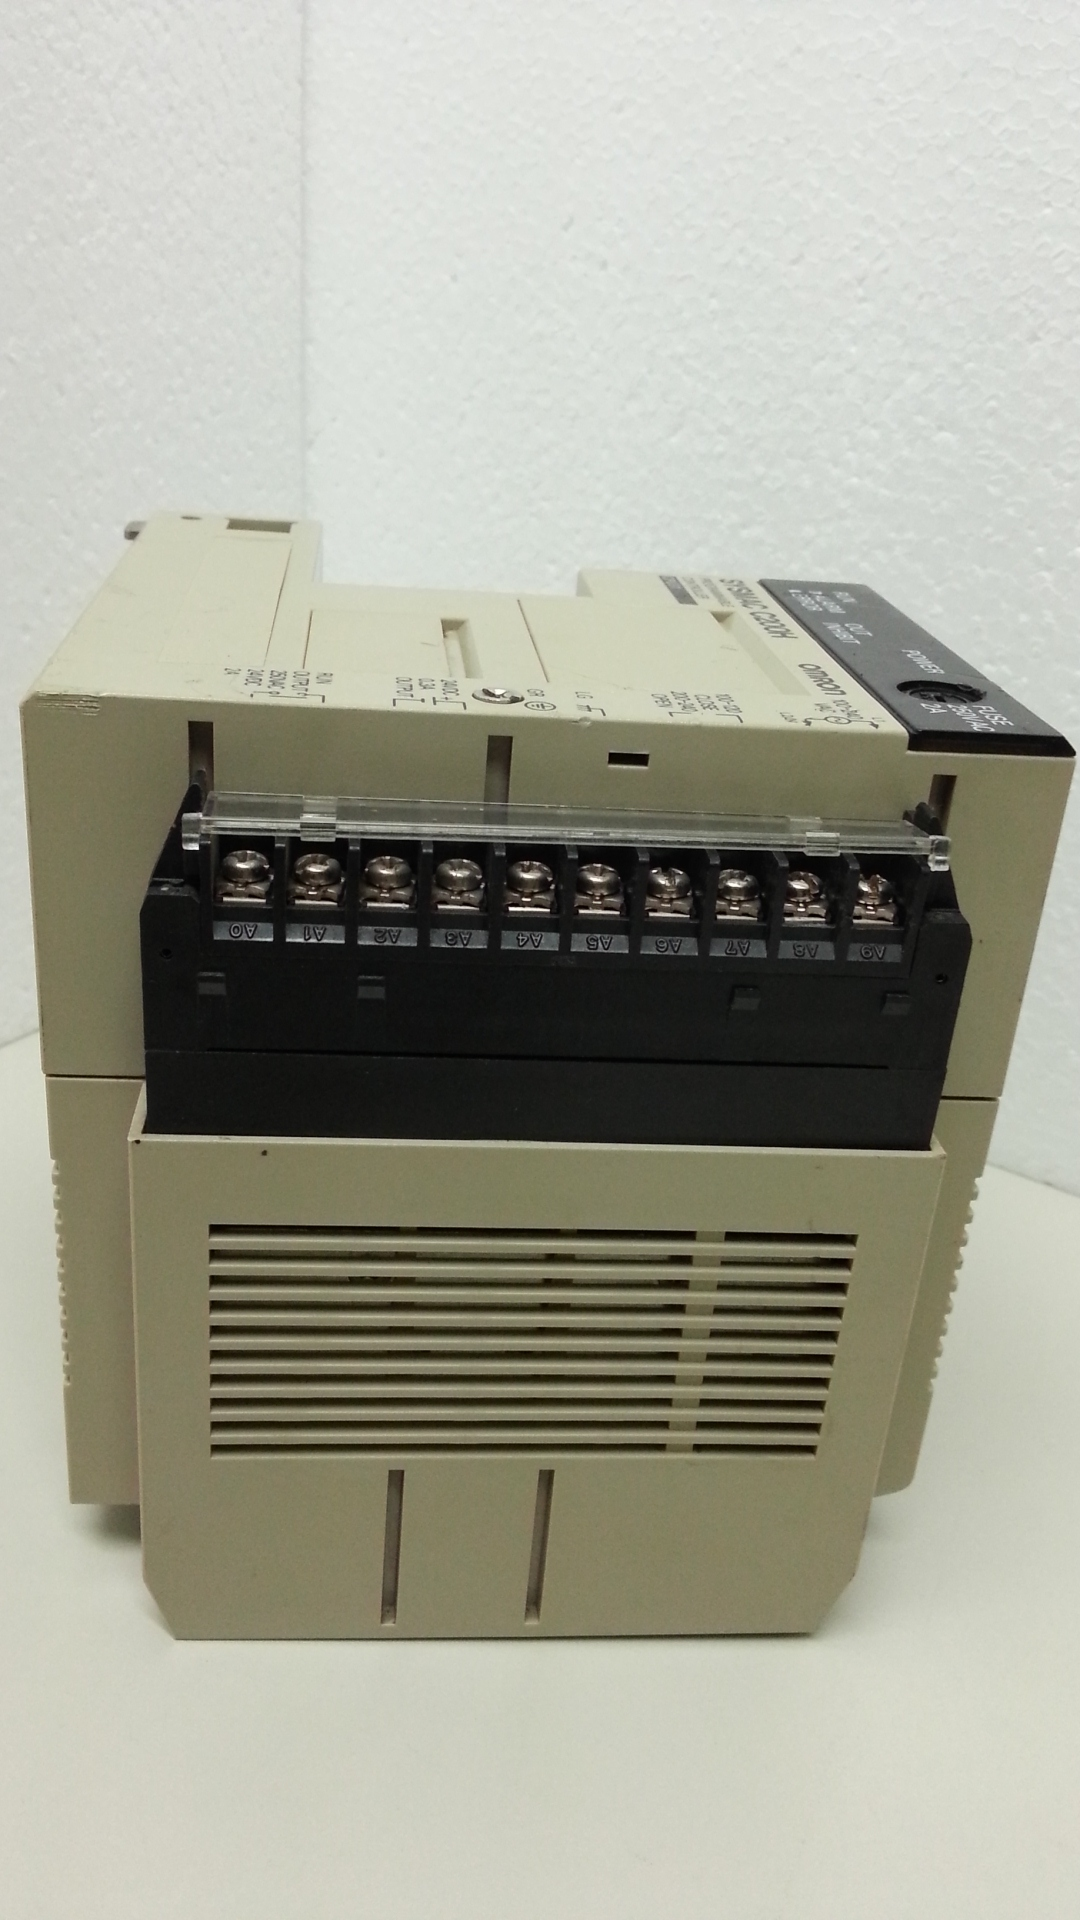 C200H-CPU31-E Omron cpu unit.